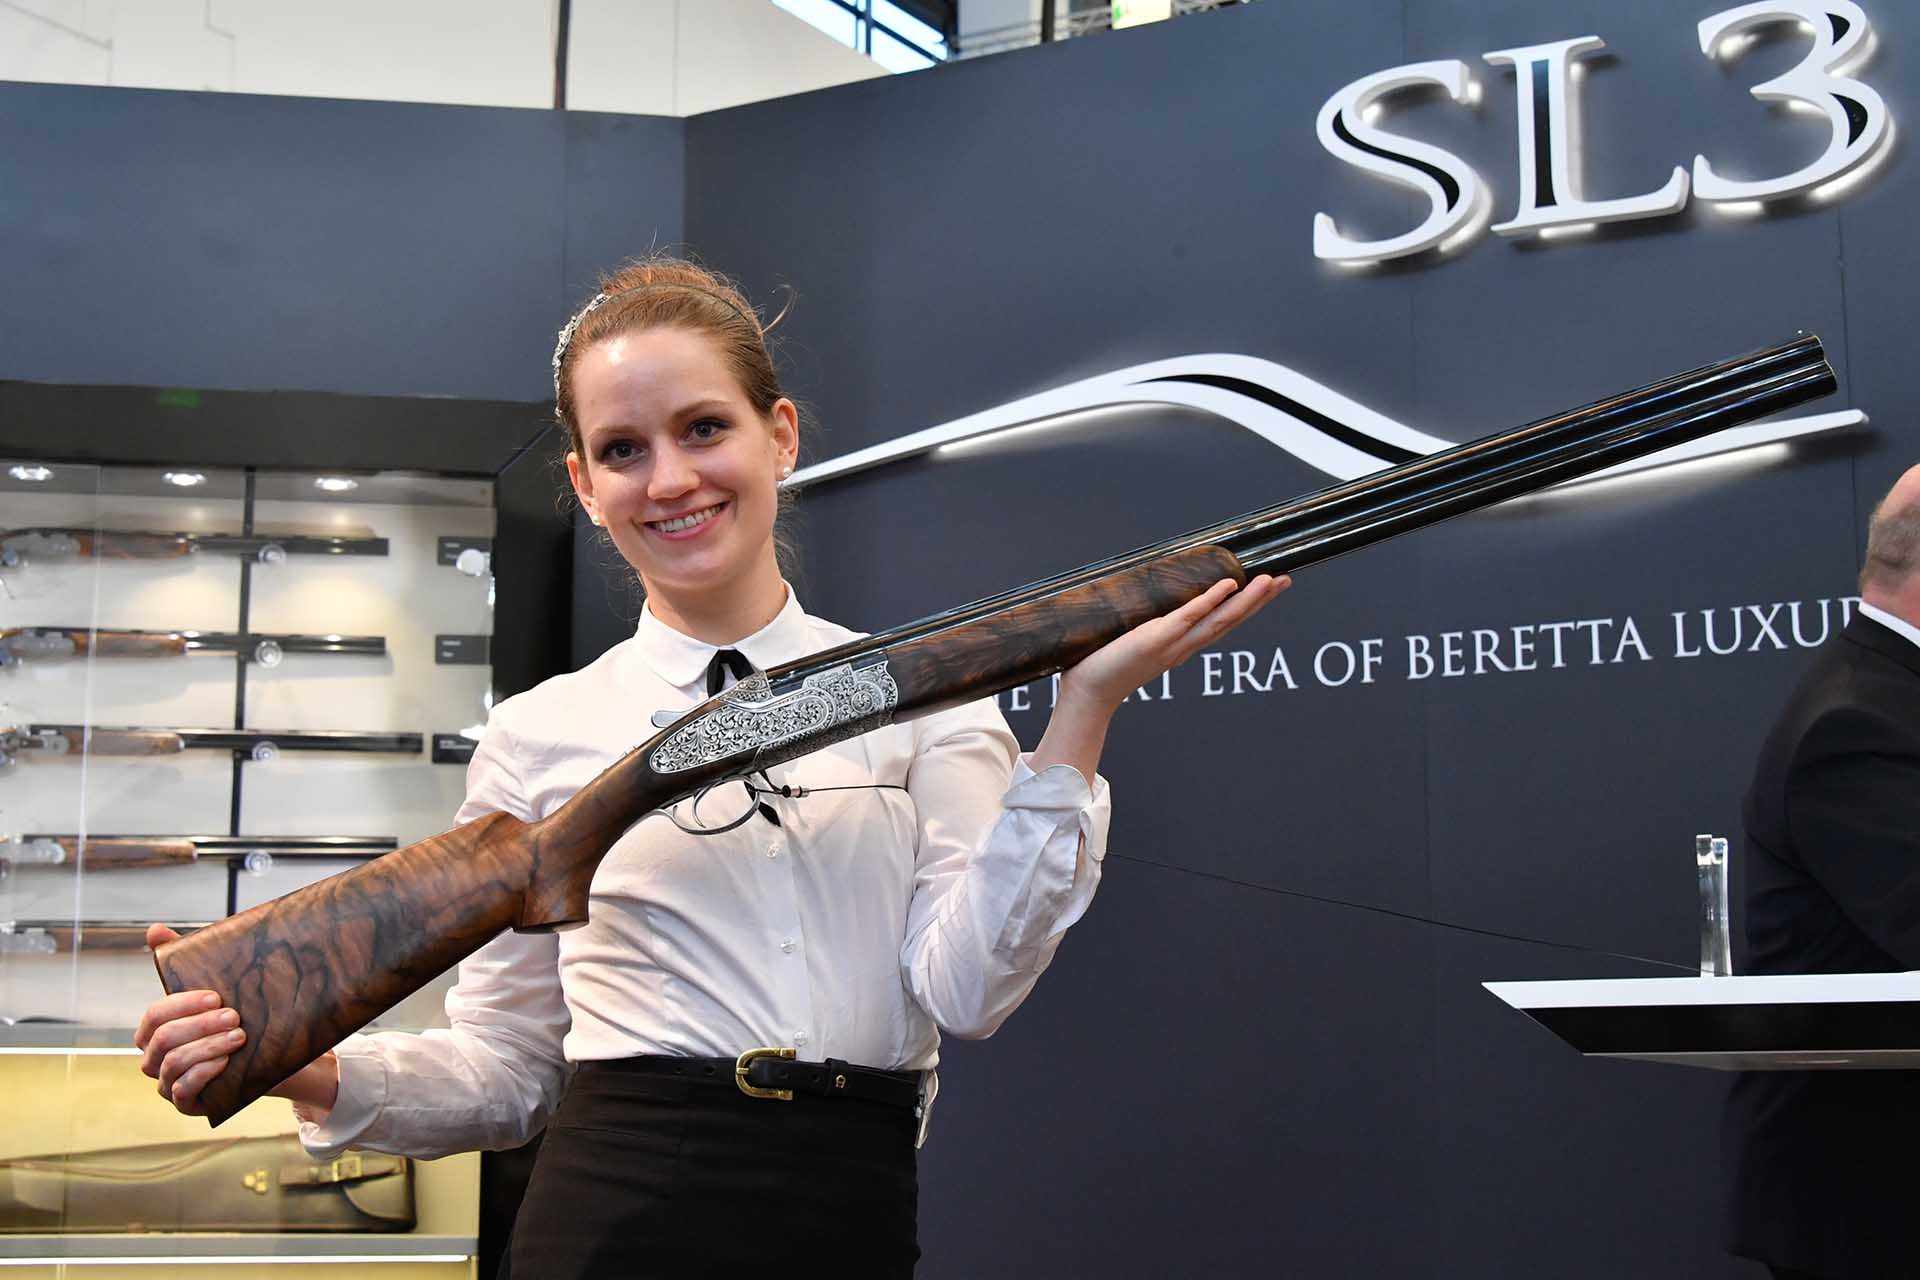 The hunting over-under Beretta SL3 at IWA 2018